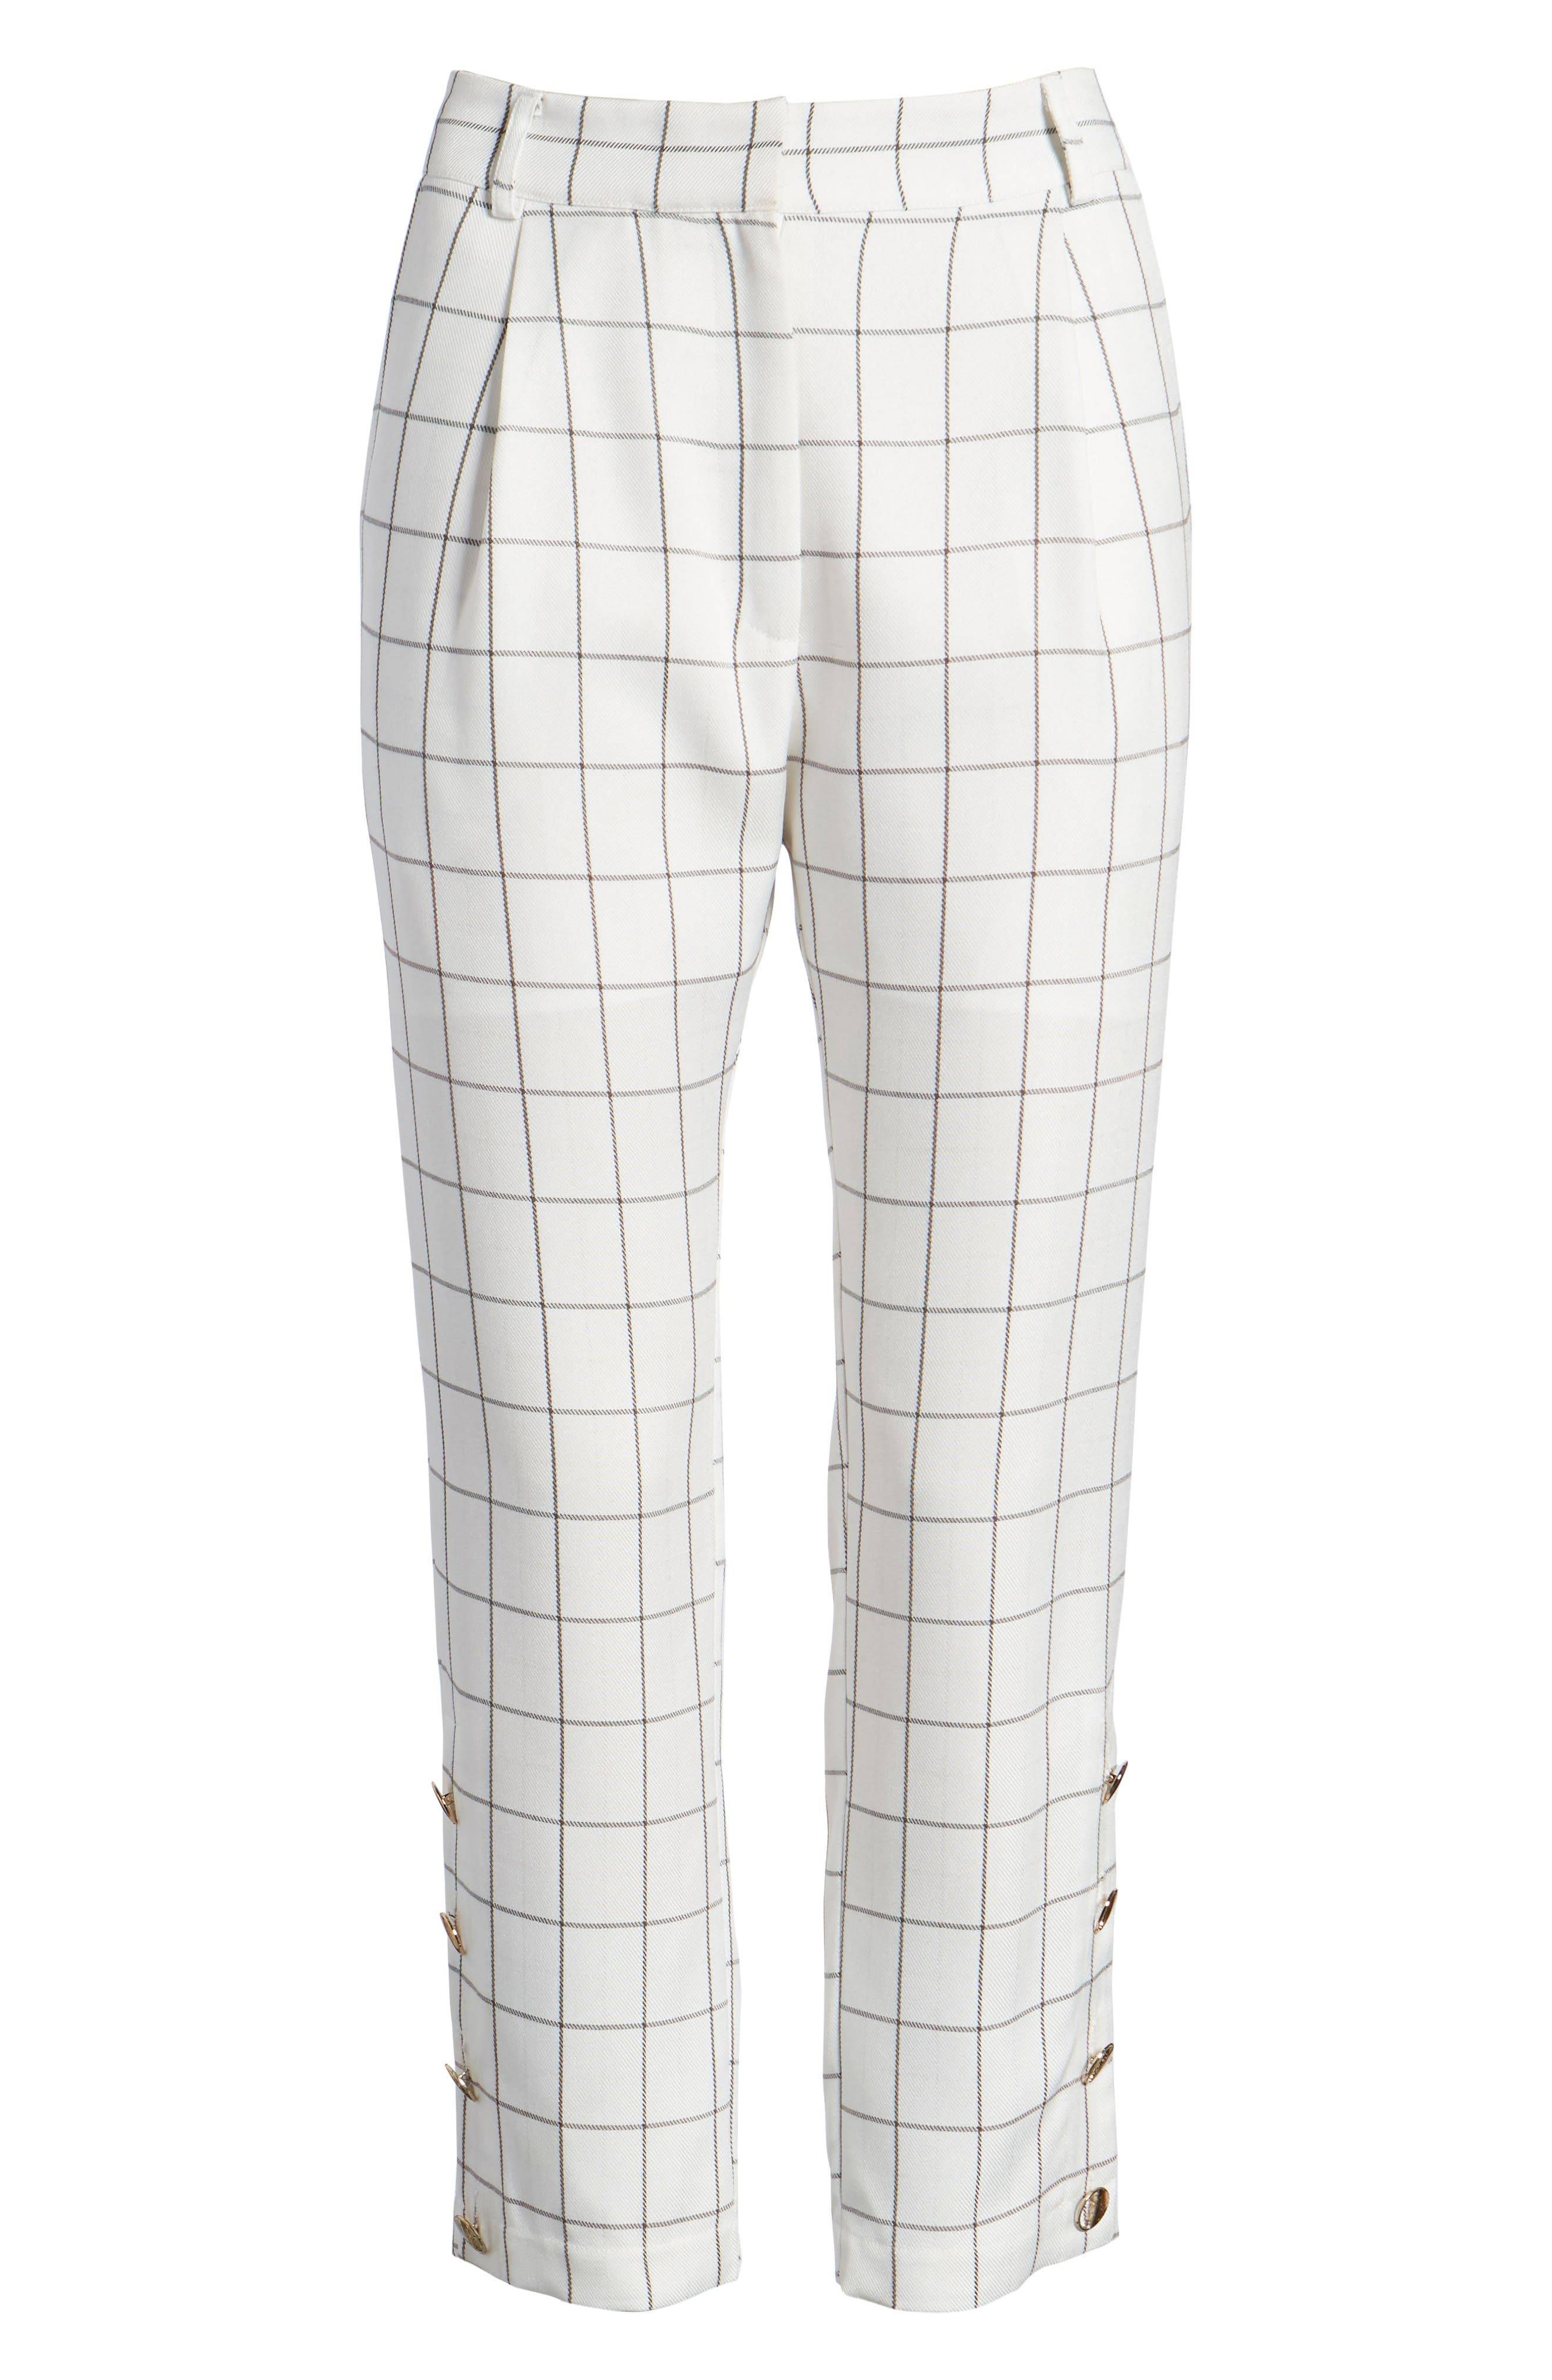 Chriselle x J.O.A. High Waist Ankle Skinny Trousers,                             Alternate thumbnail 10, color,                             White